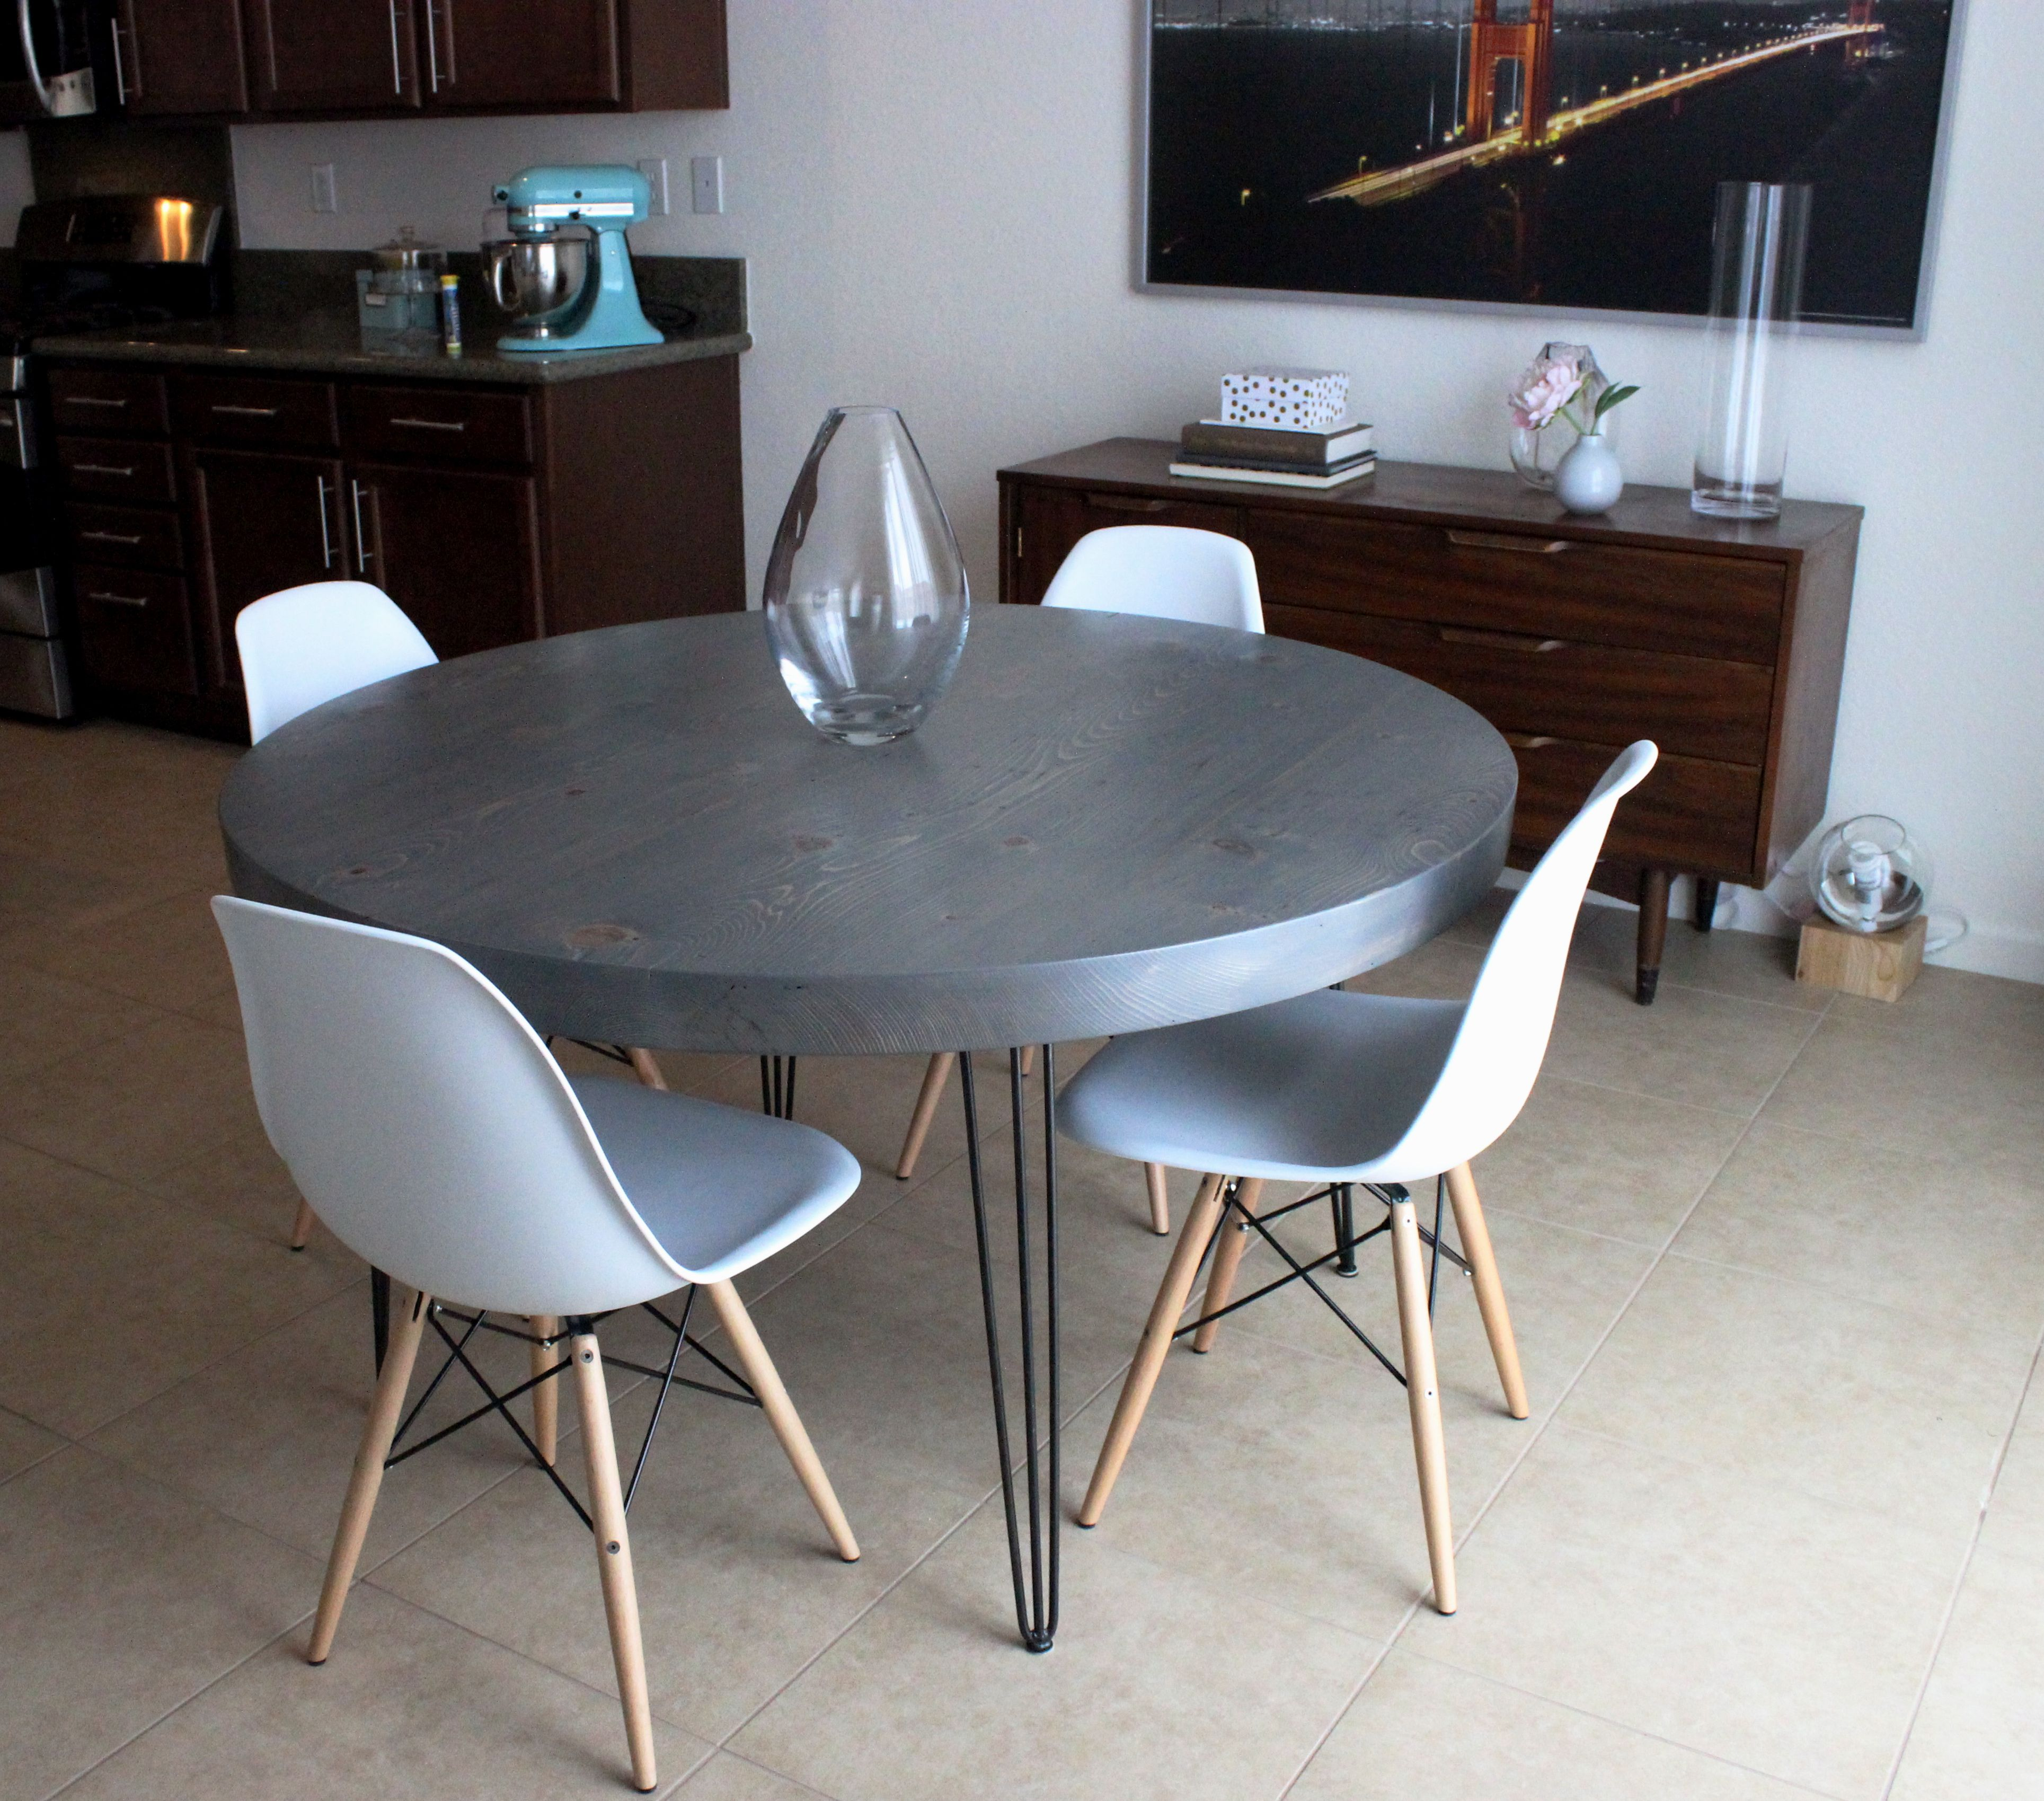 Custom Made Mid Century Modern Round Hairpin Leg Table With A 3 Thick Pine Tabletop Stained Minwax Clic Grey Stain 4 White Baxton Studio Eames